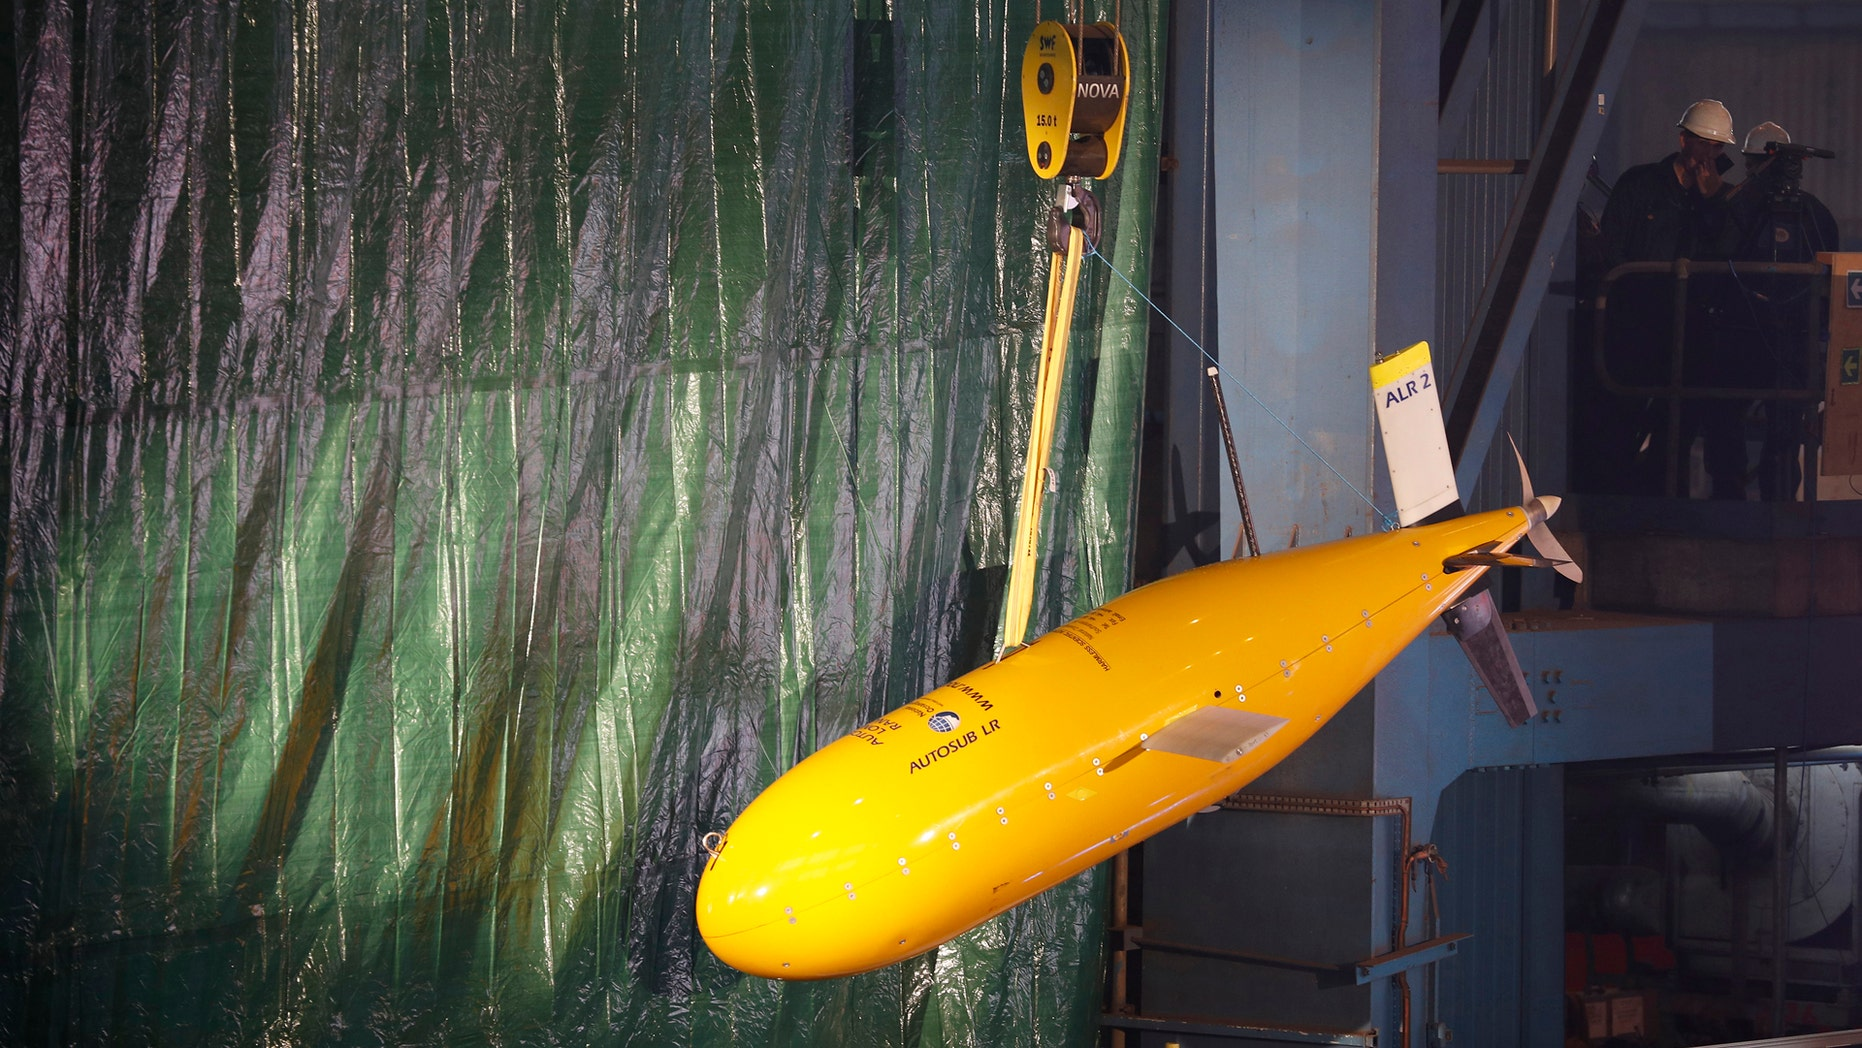 Sub 'Boaty McBoatface' hangs from a crane during the keel laying ceremony of the polar research vessel the Sir David Attenborough, at the Cammell Laird ship yard in Birkenhead, Oct. 17 , 2016. (REUTERS/Phil Noble)